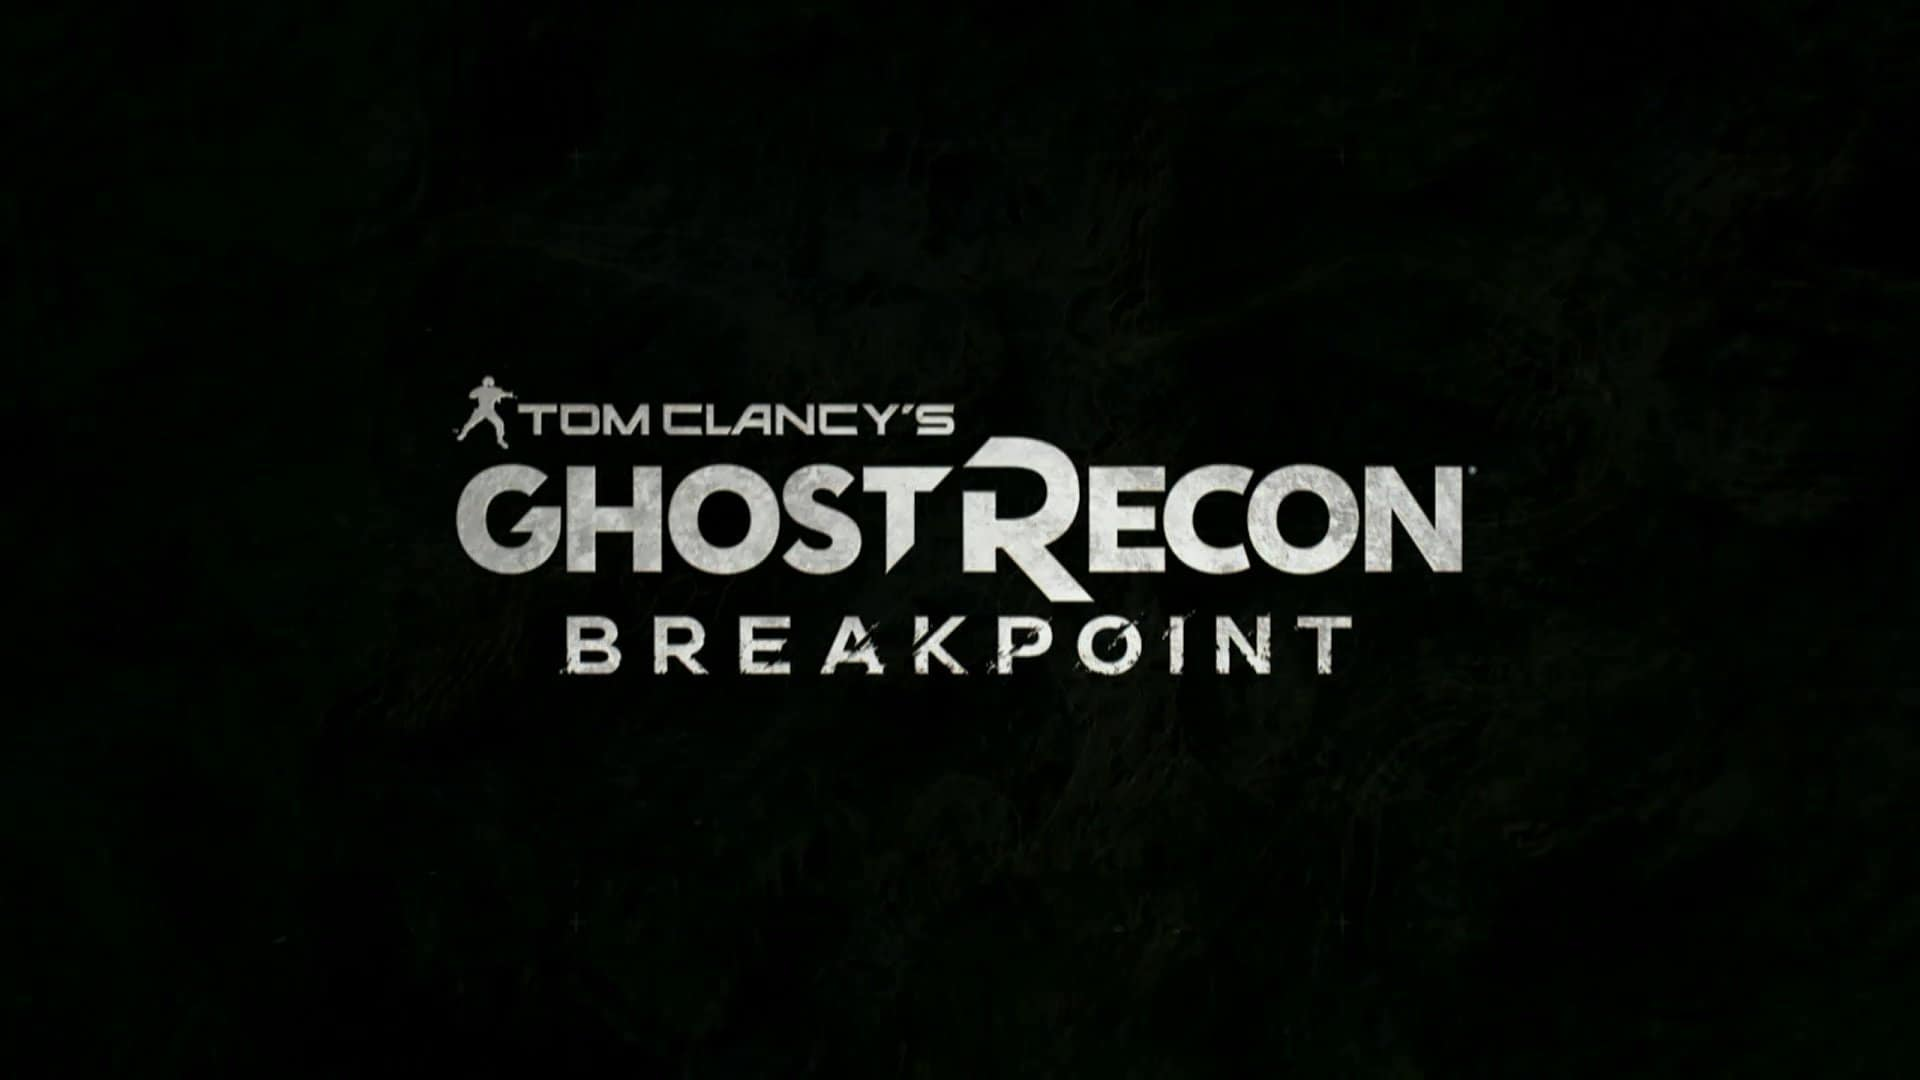 Ubisoft Announces Tom Clancy's Ghost Recon Breakpoint BETA Starting September 5